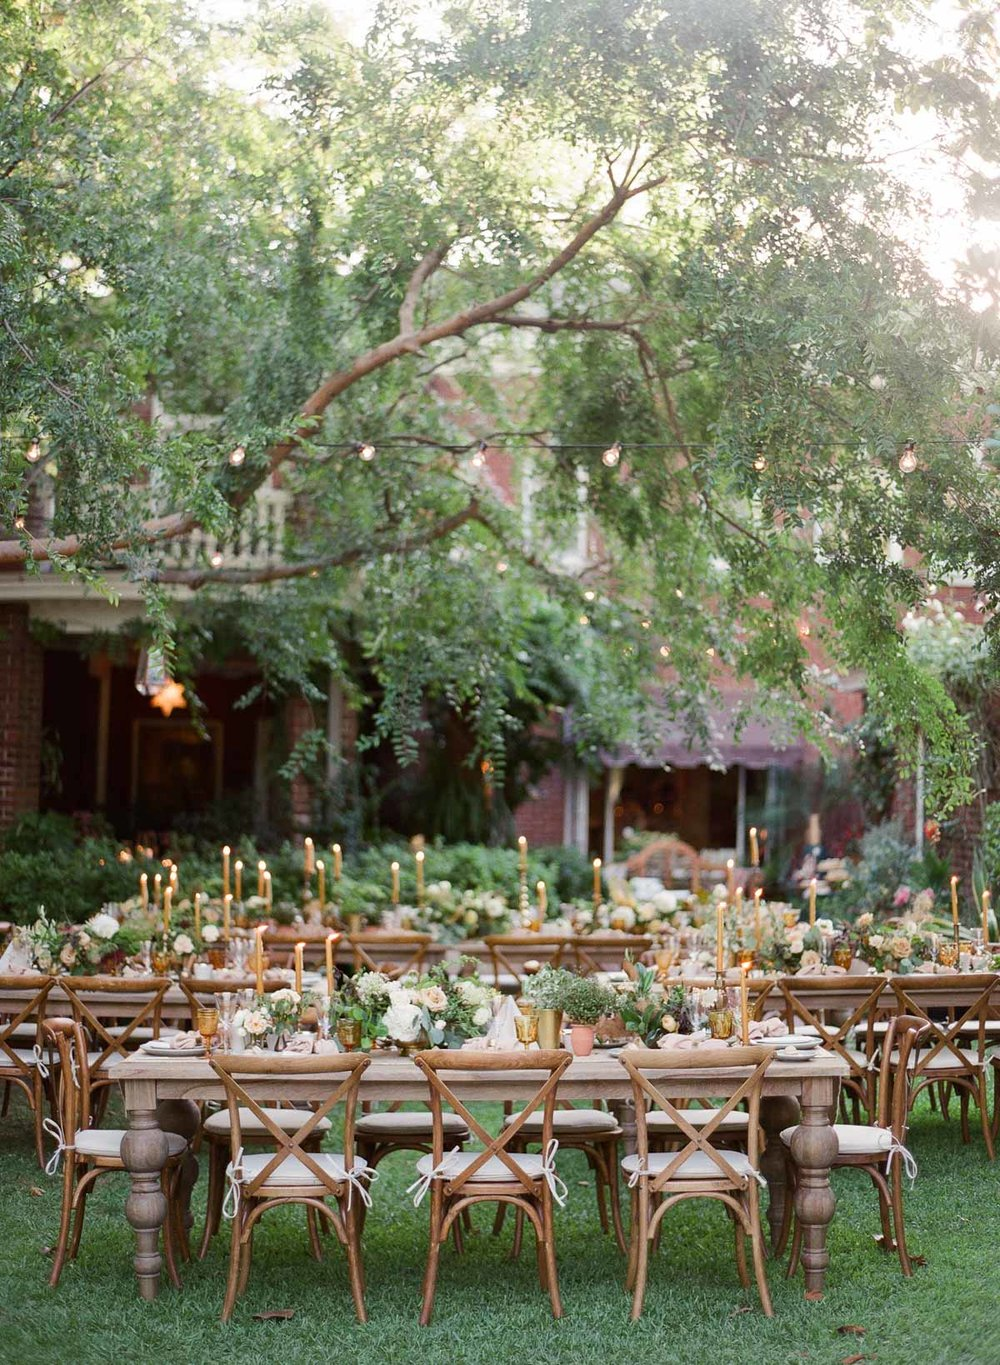 Lauren_Travis_Backyard_California_Wedding (c) Greg_Finck-110.jpg